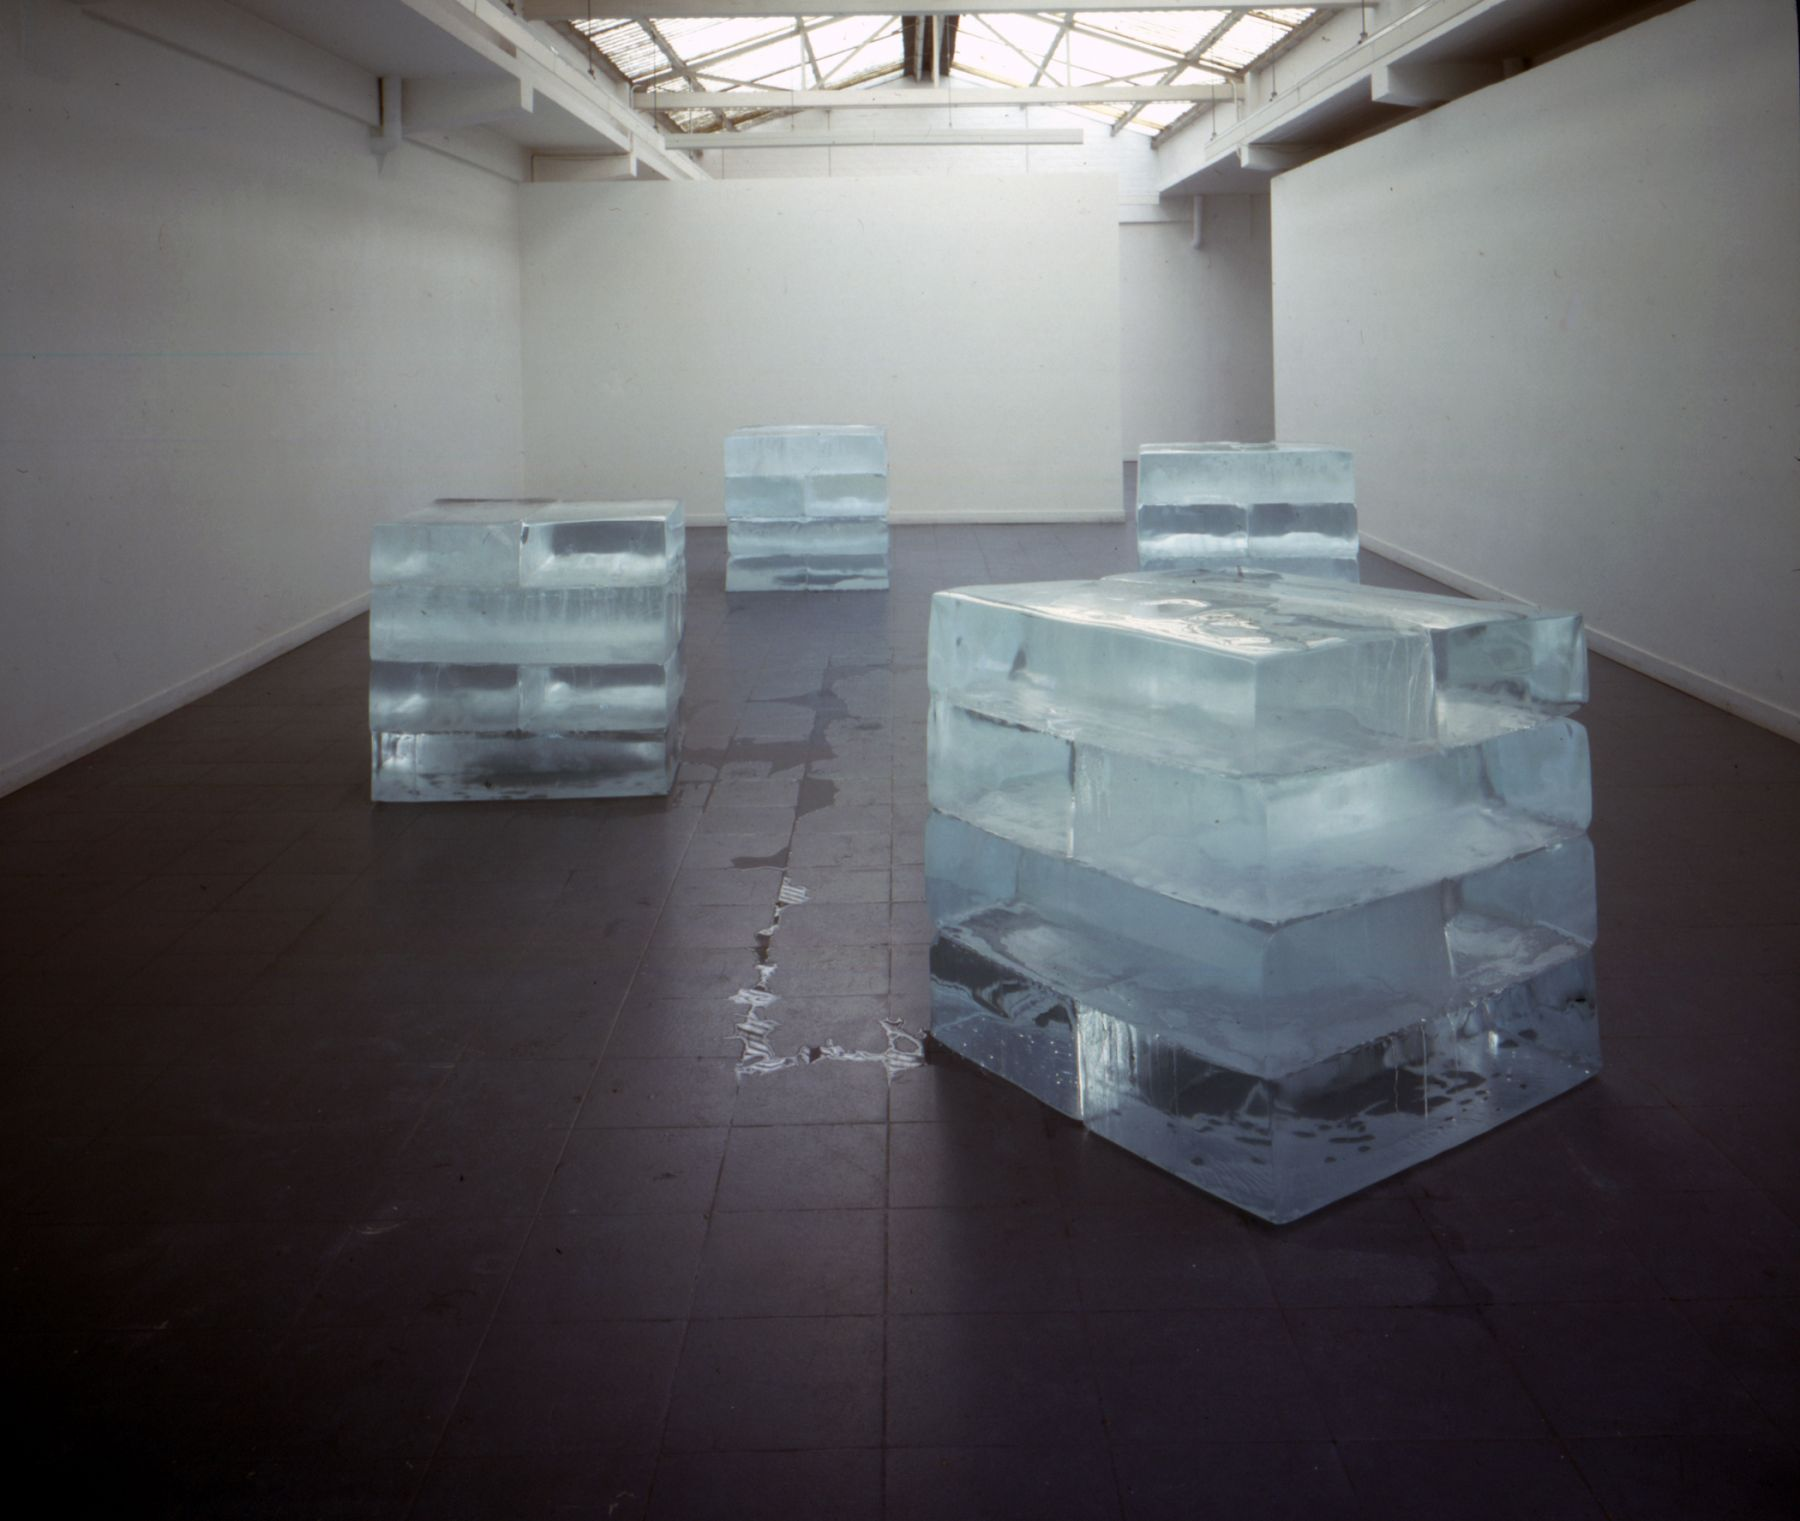 absolute, 1996, Four cubes of ice